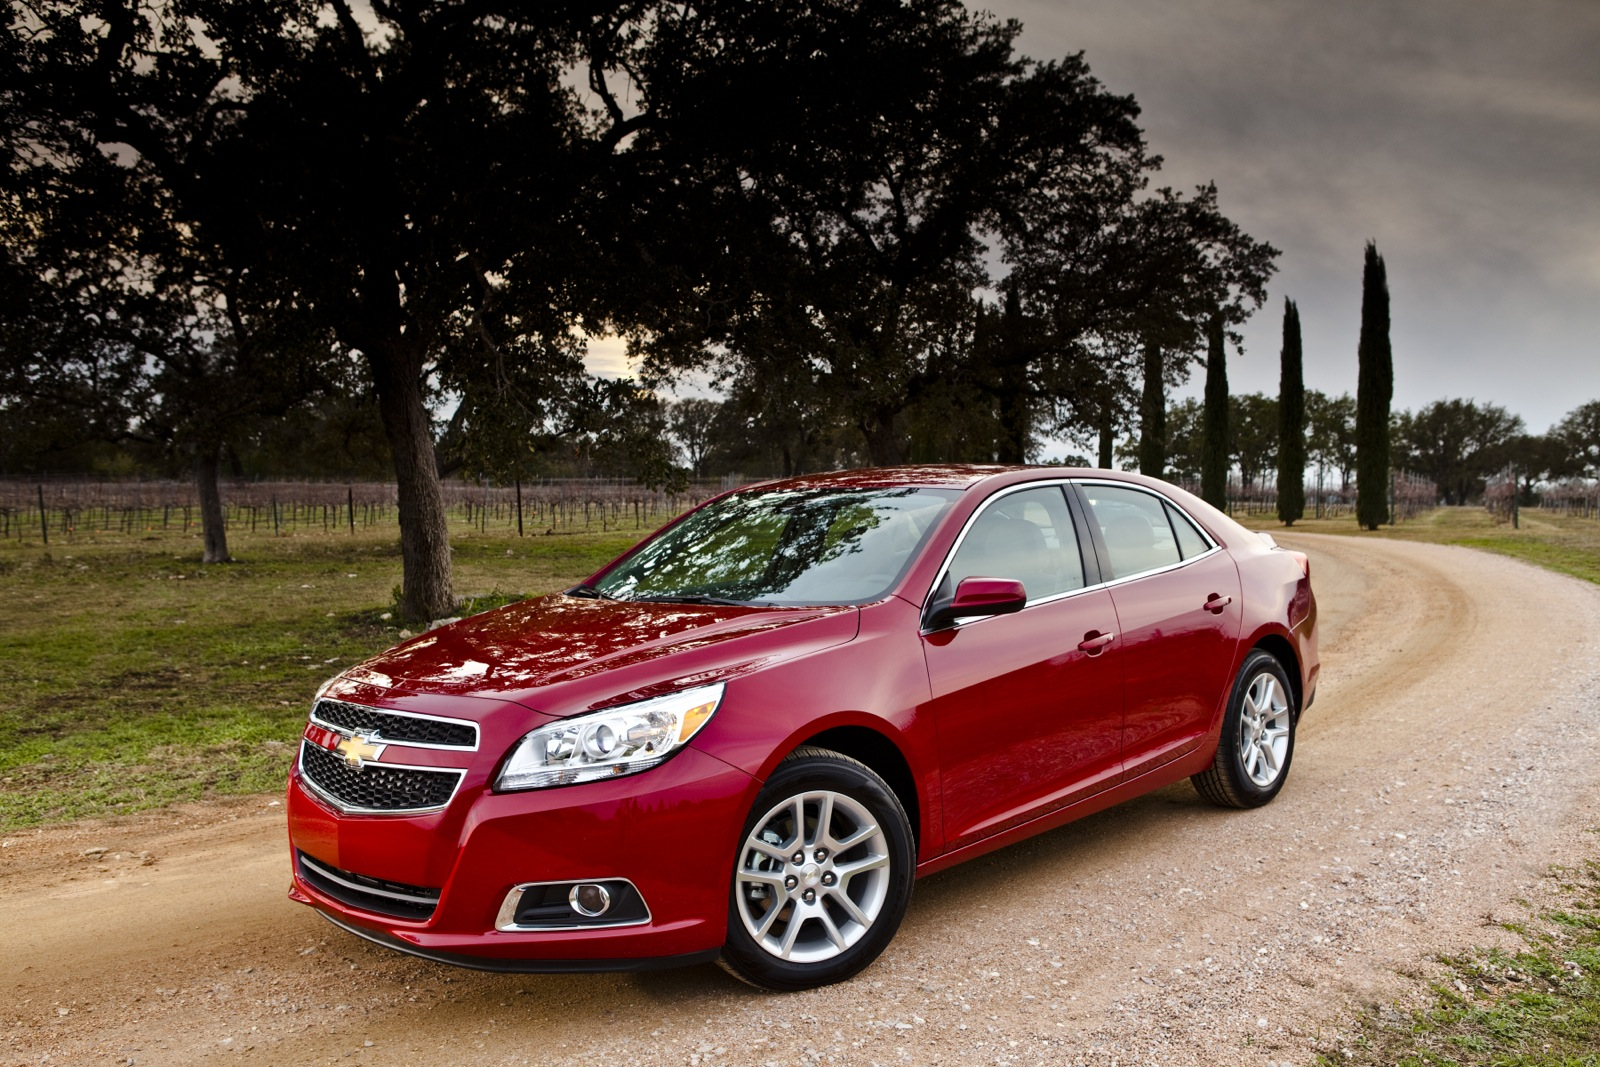 Malibu 2006 chevy malibu recalls : 2013 Chevrolet Malibu Eco: First Drive Review